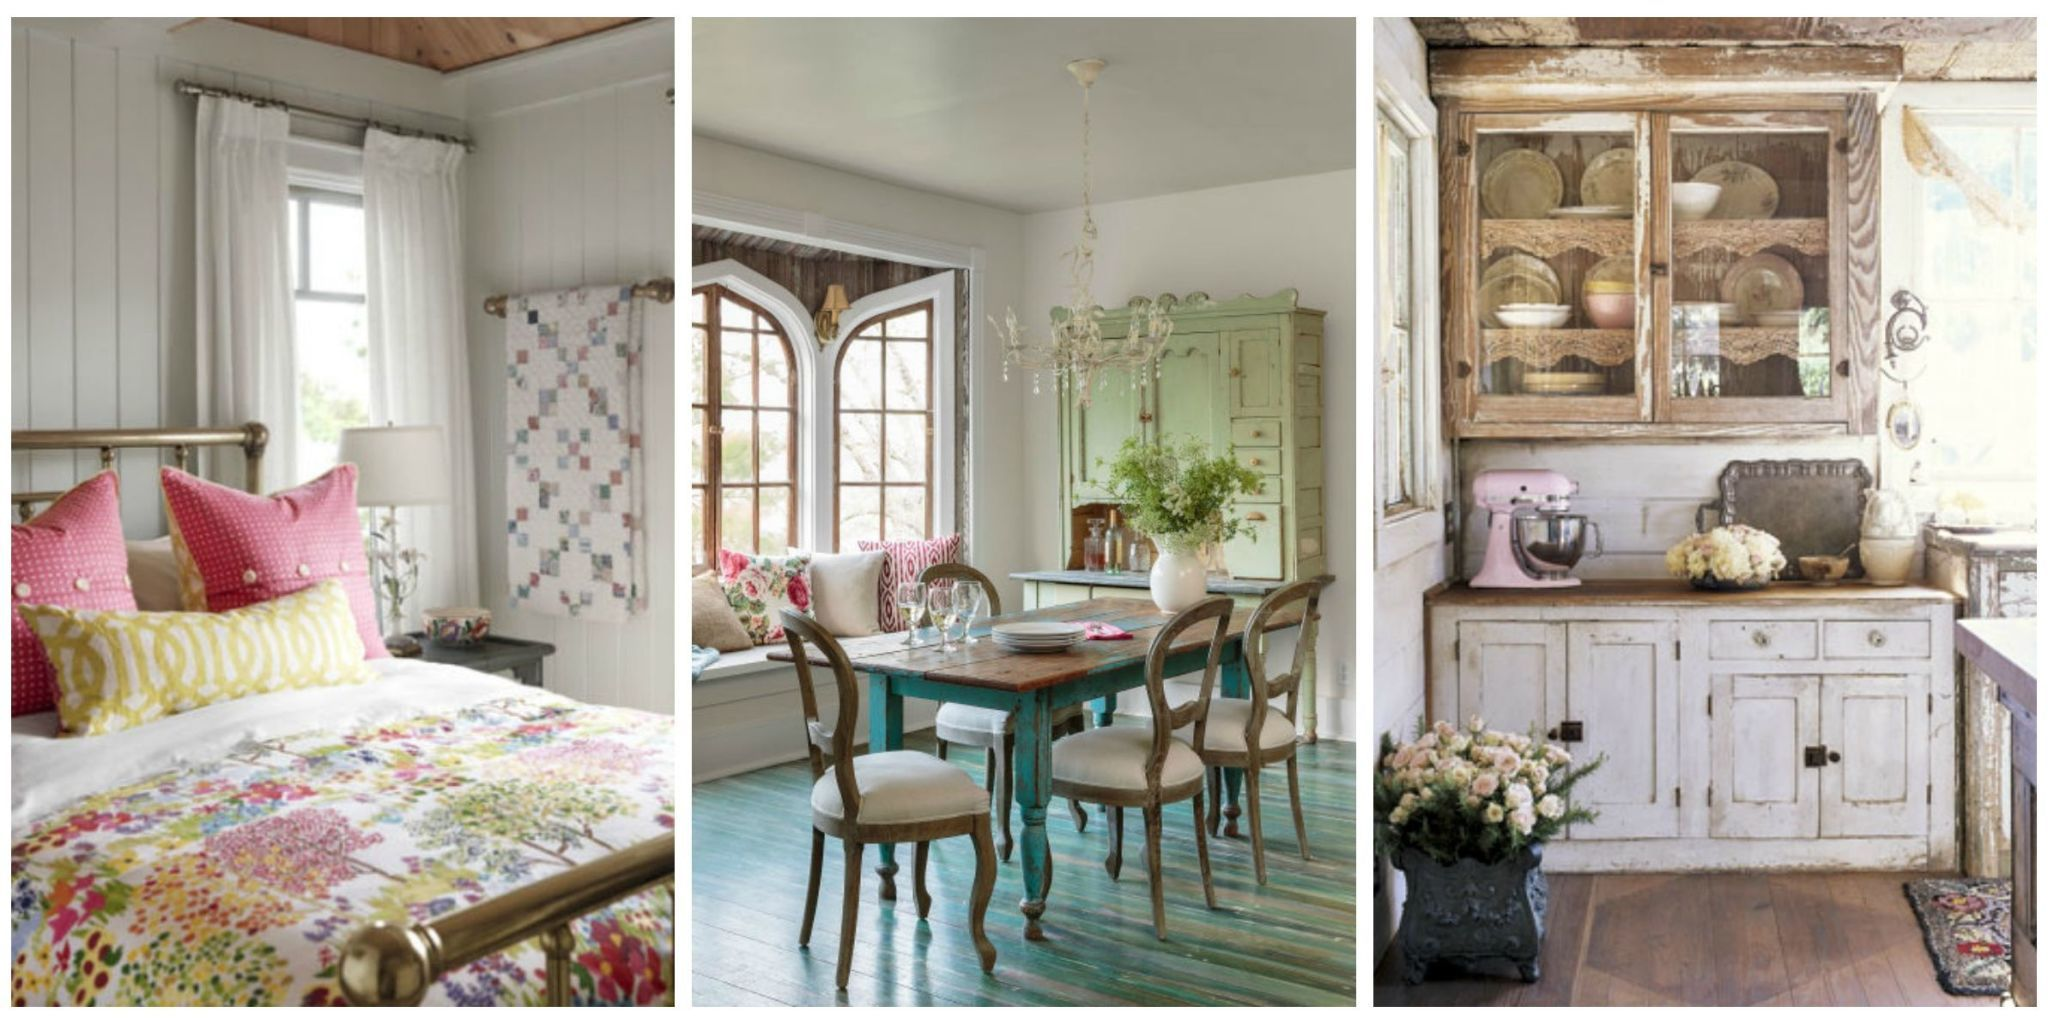 From California To Connecticut, These Country Cottage Getaways Are Filled  With Inspiring Decorating Ideas For Cozy Spaces.